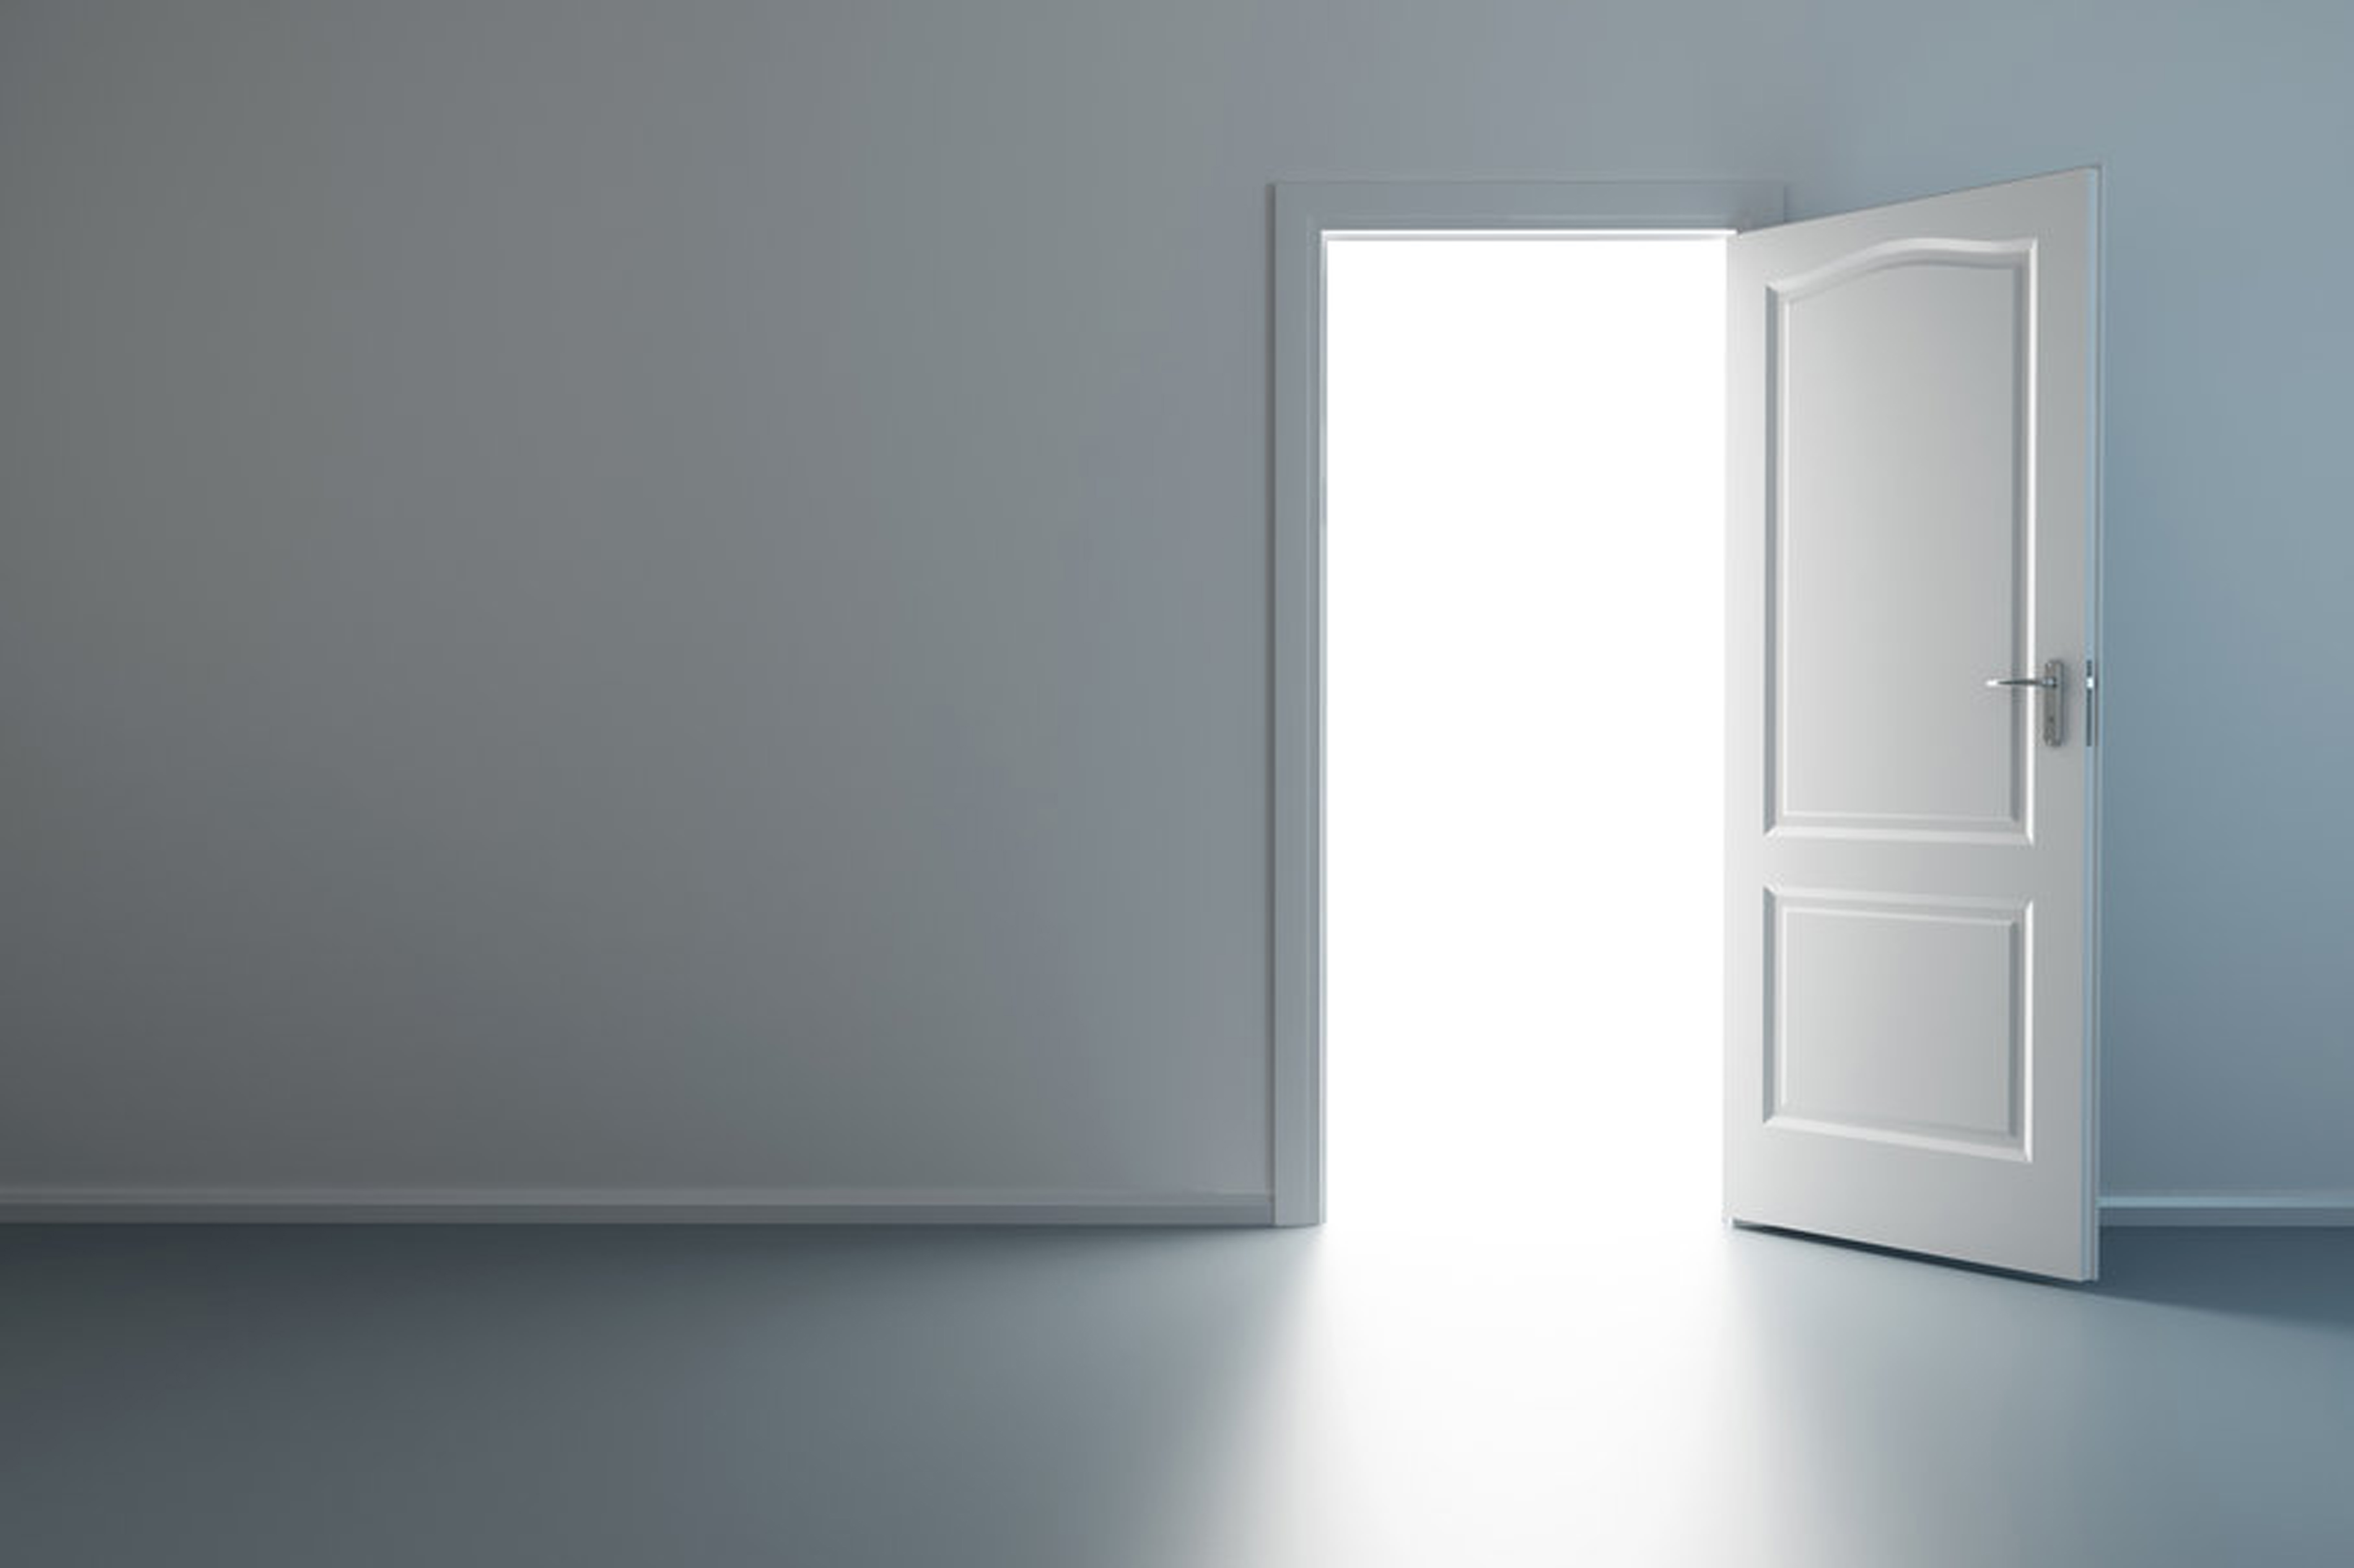 White Space Open Door White Space Turn Background Image